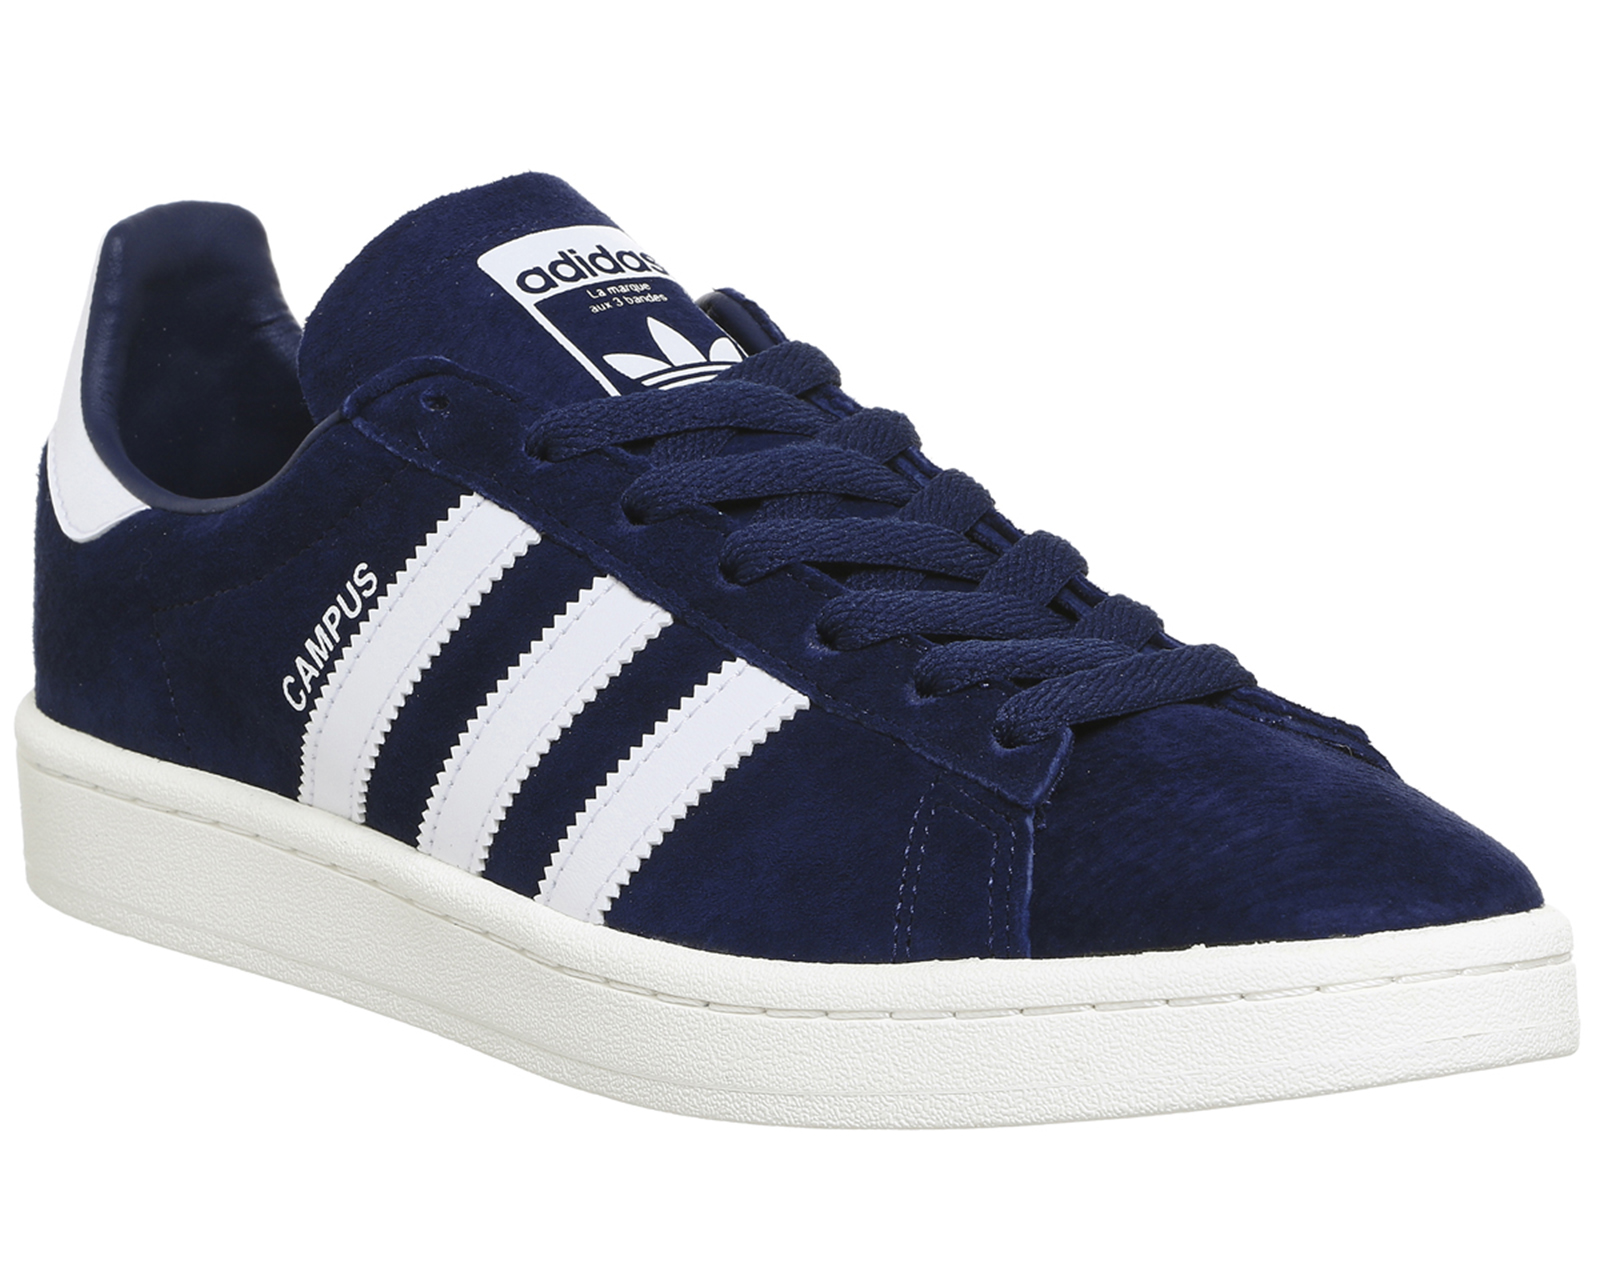 Details about Mens Adidas Campus Dark Blue White Trainers Shoes